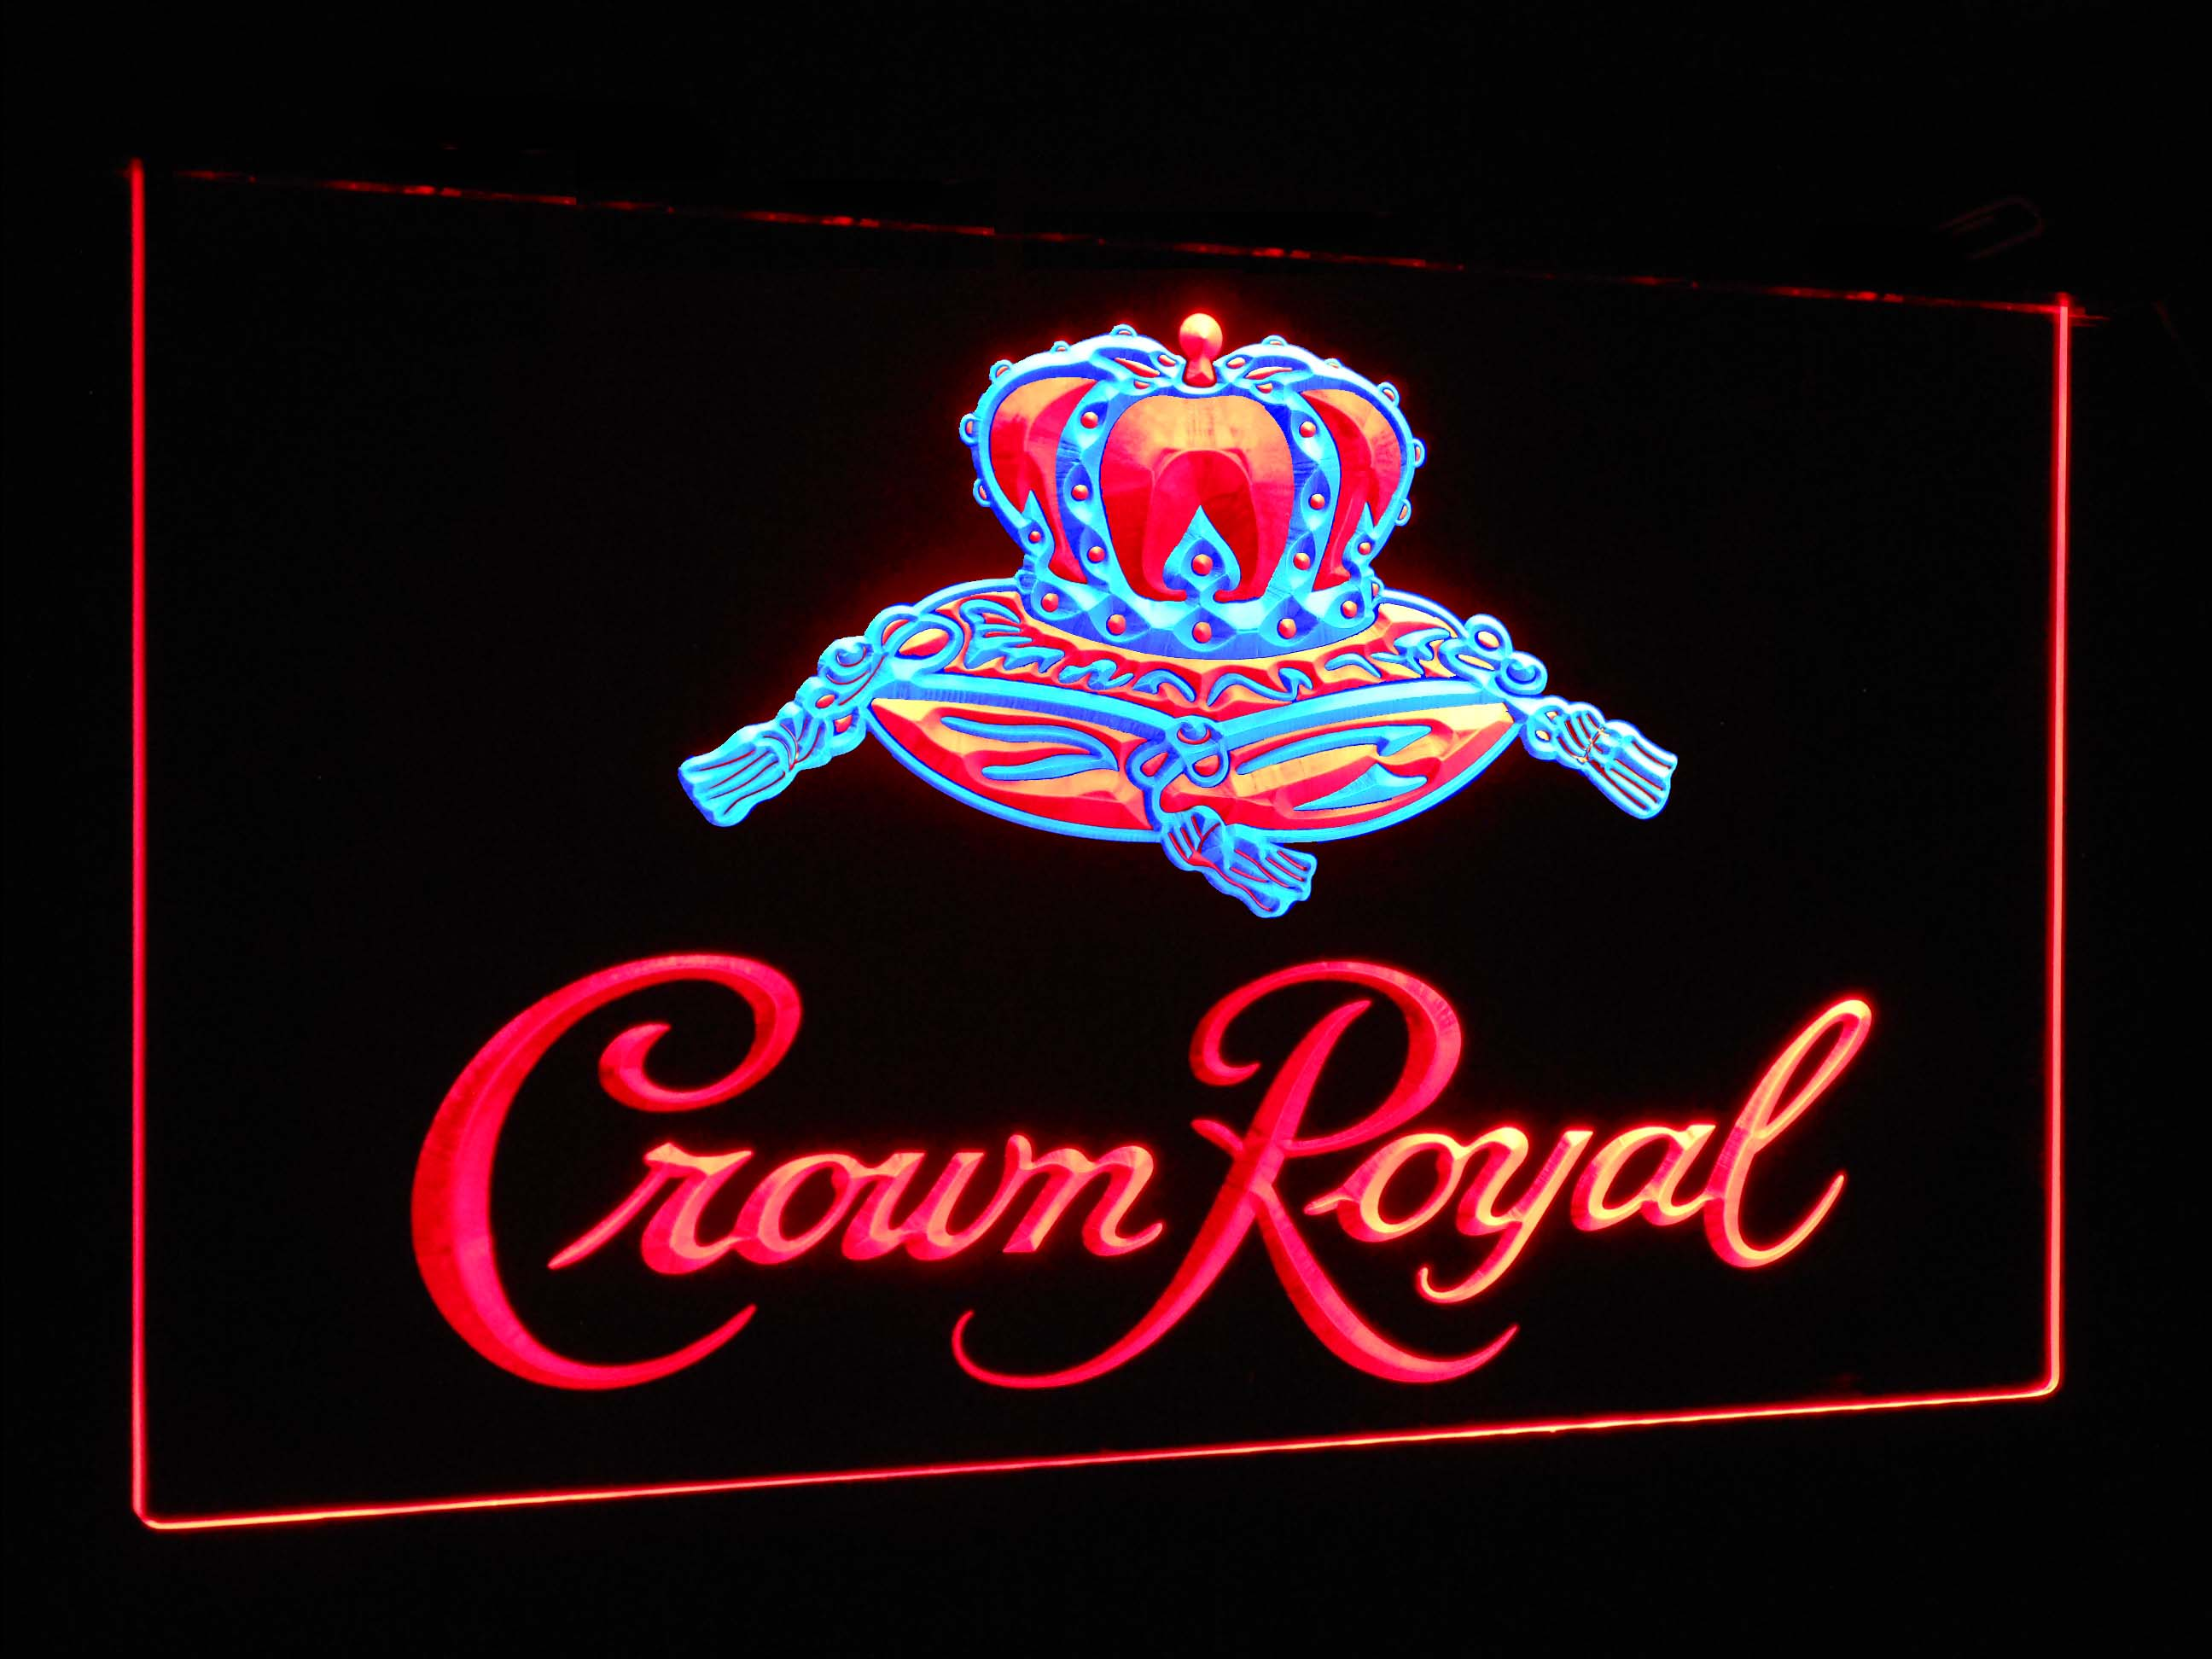 Crown Royal  Bar Decoration Gift Dual Color Led Neon Light Signs st6-a0104 - Woody Signs Co.